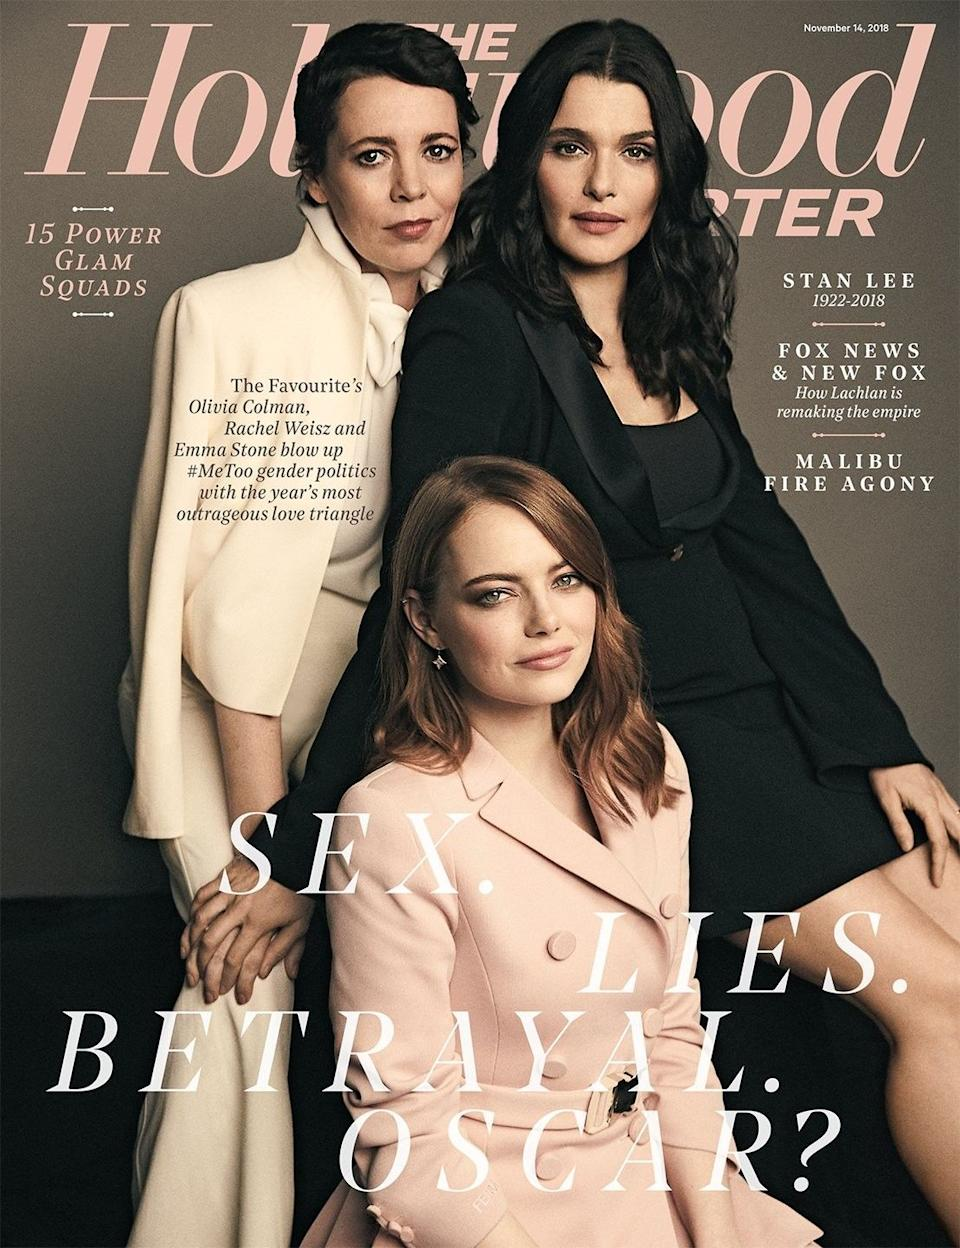 Olivia Colman, Rachel Weisz and Emma Stone pose for the November 2018 [Photo: The Hollywood Reporter]